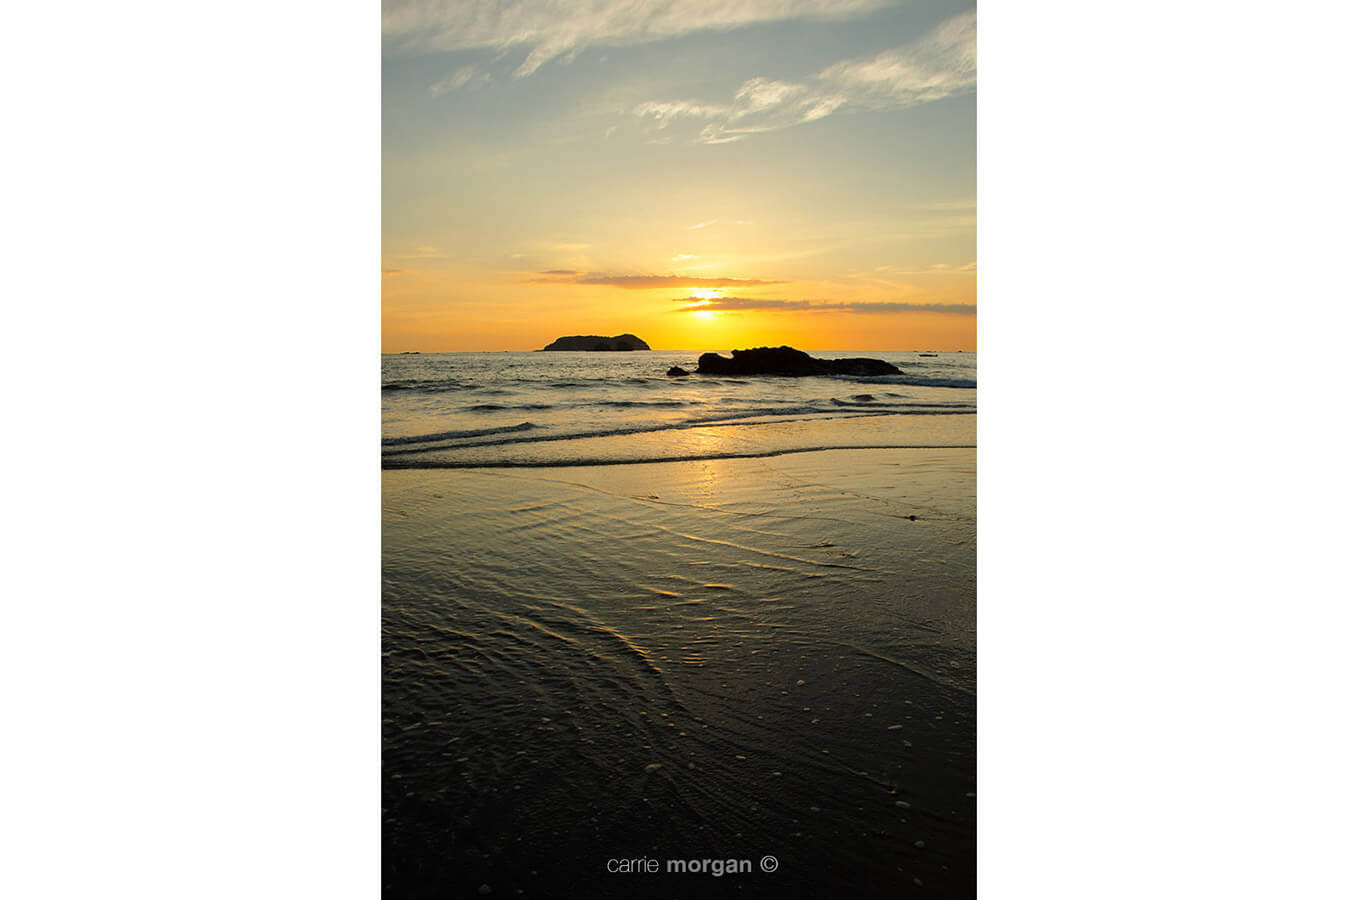 Sunset at Manual Antonio Costa Rica by Carrie Morgan